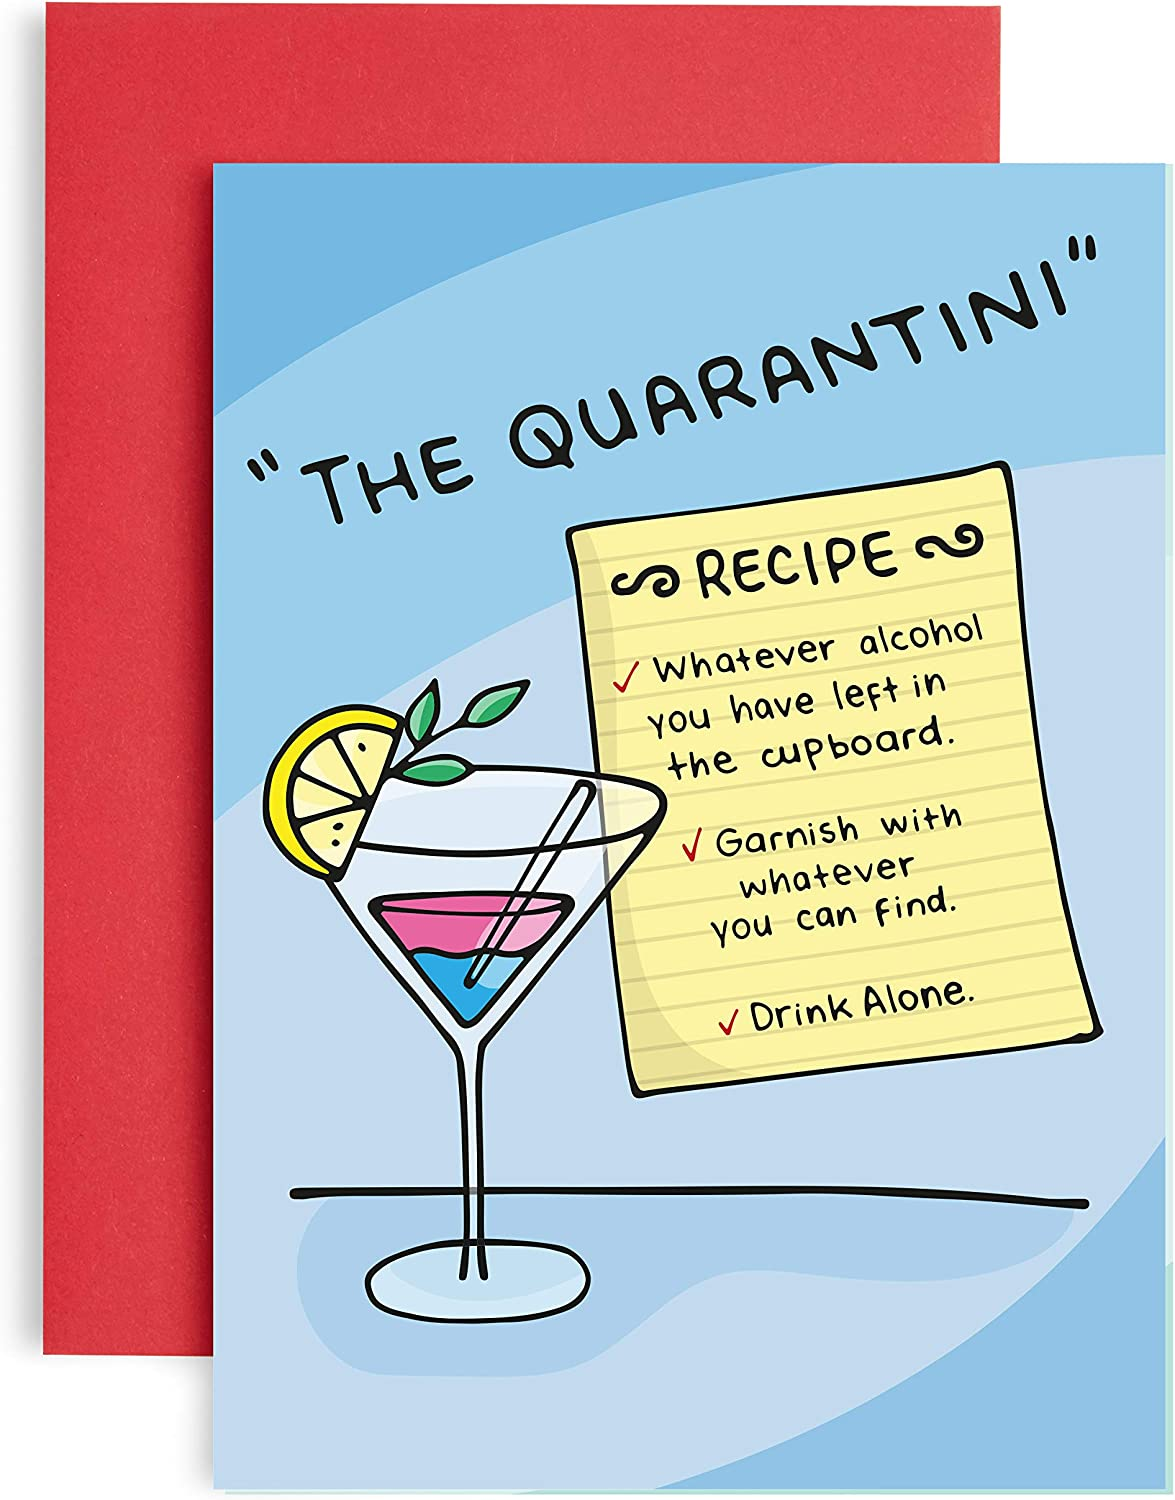 Funny Quarantini Birthday Card For Her Great Alcohol Cocktail Recipe Card For Gin Prosecco Or Any Alcohol Witty Banter Humour Fun And Jokes Amazon Co Uk Office Products